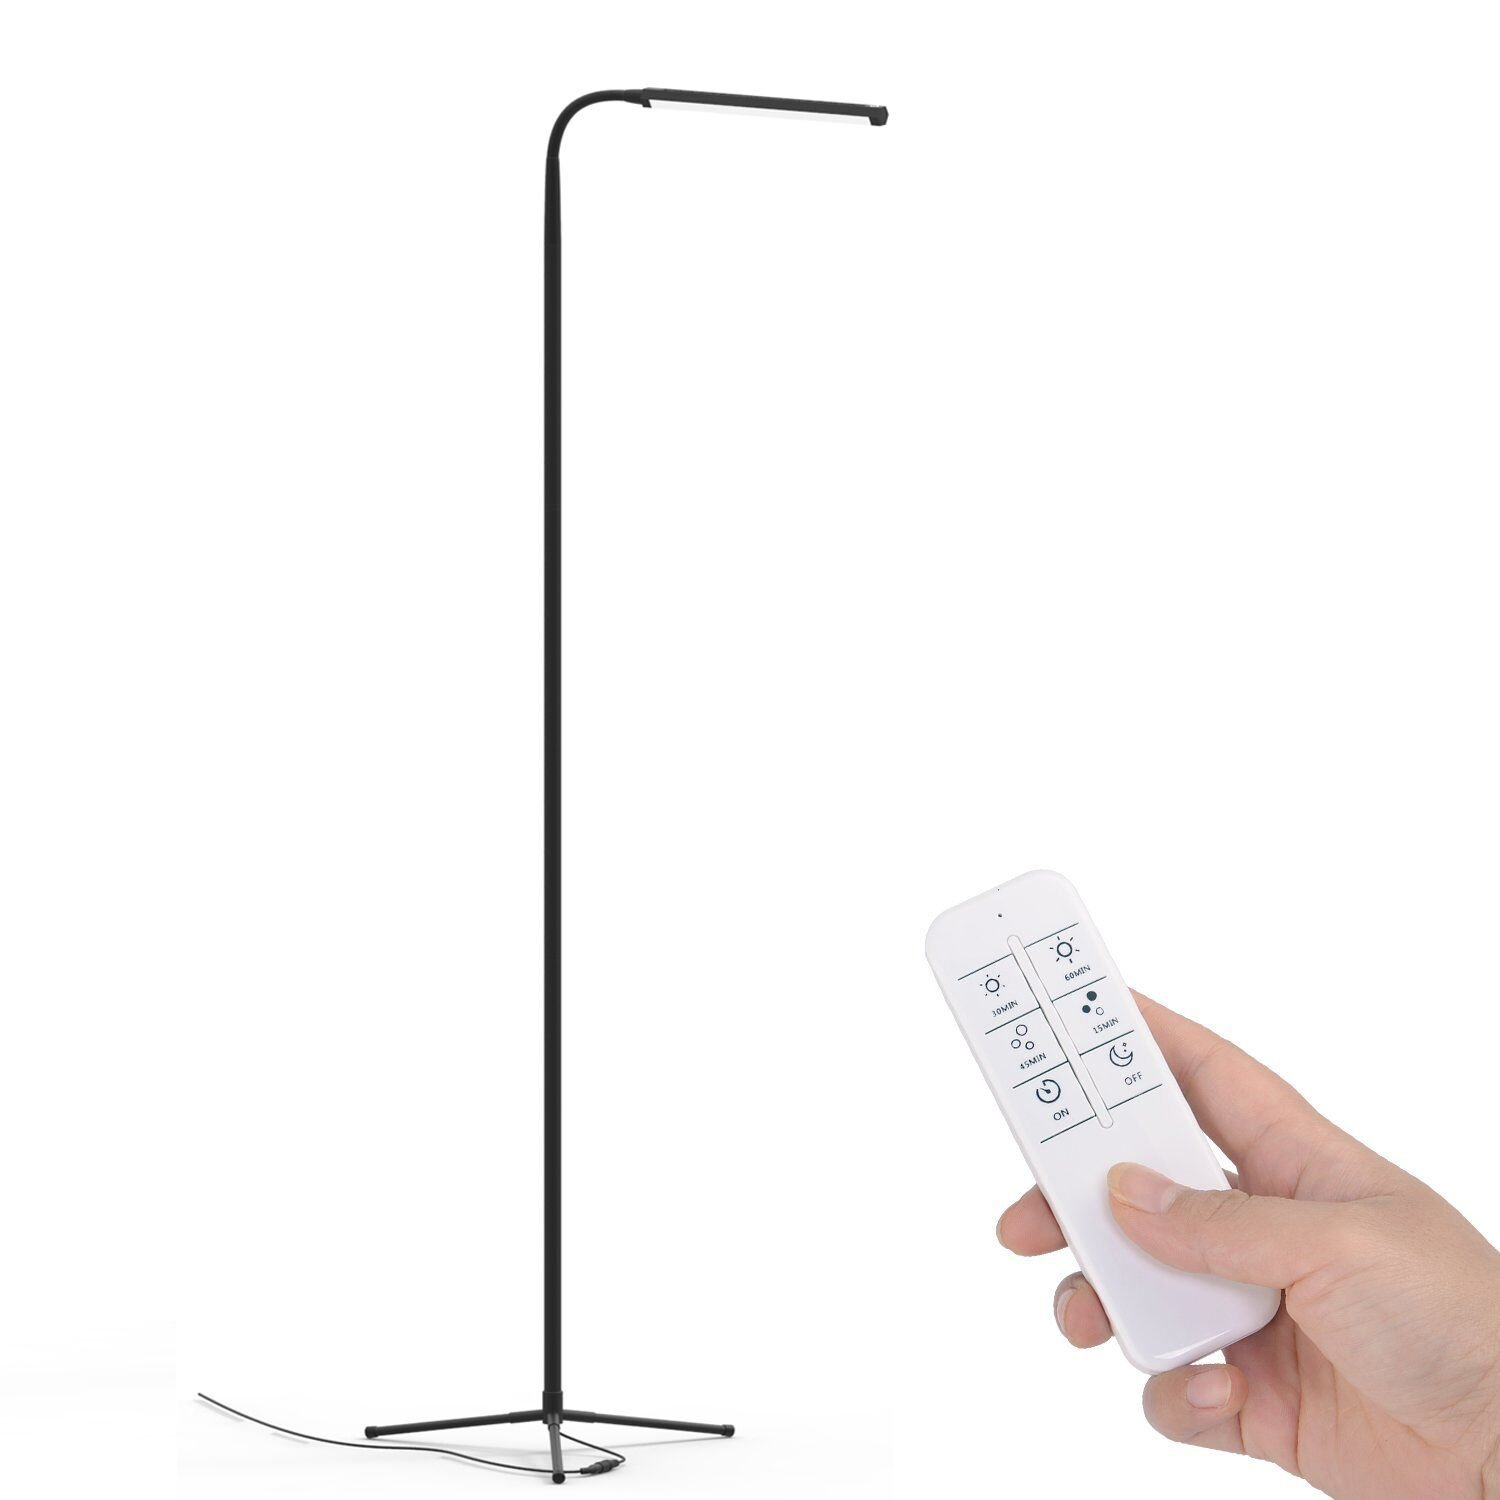 F9 Modern Touch LED Standing Floor Lamp Reading for Living Room Bedroom with Remote Control 12 Levels Dimmable 3000-6000K Black f9 modern touch led standing floor lamp reading for living room bedroom with remote control 12 levels dimmable 3000 6000k black